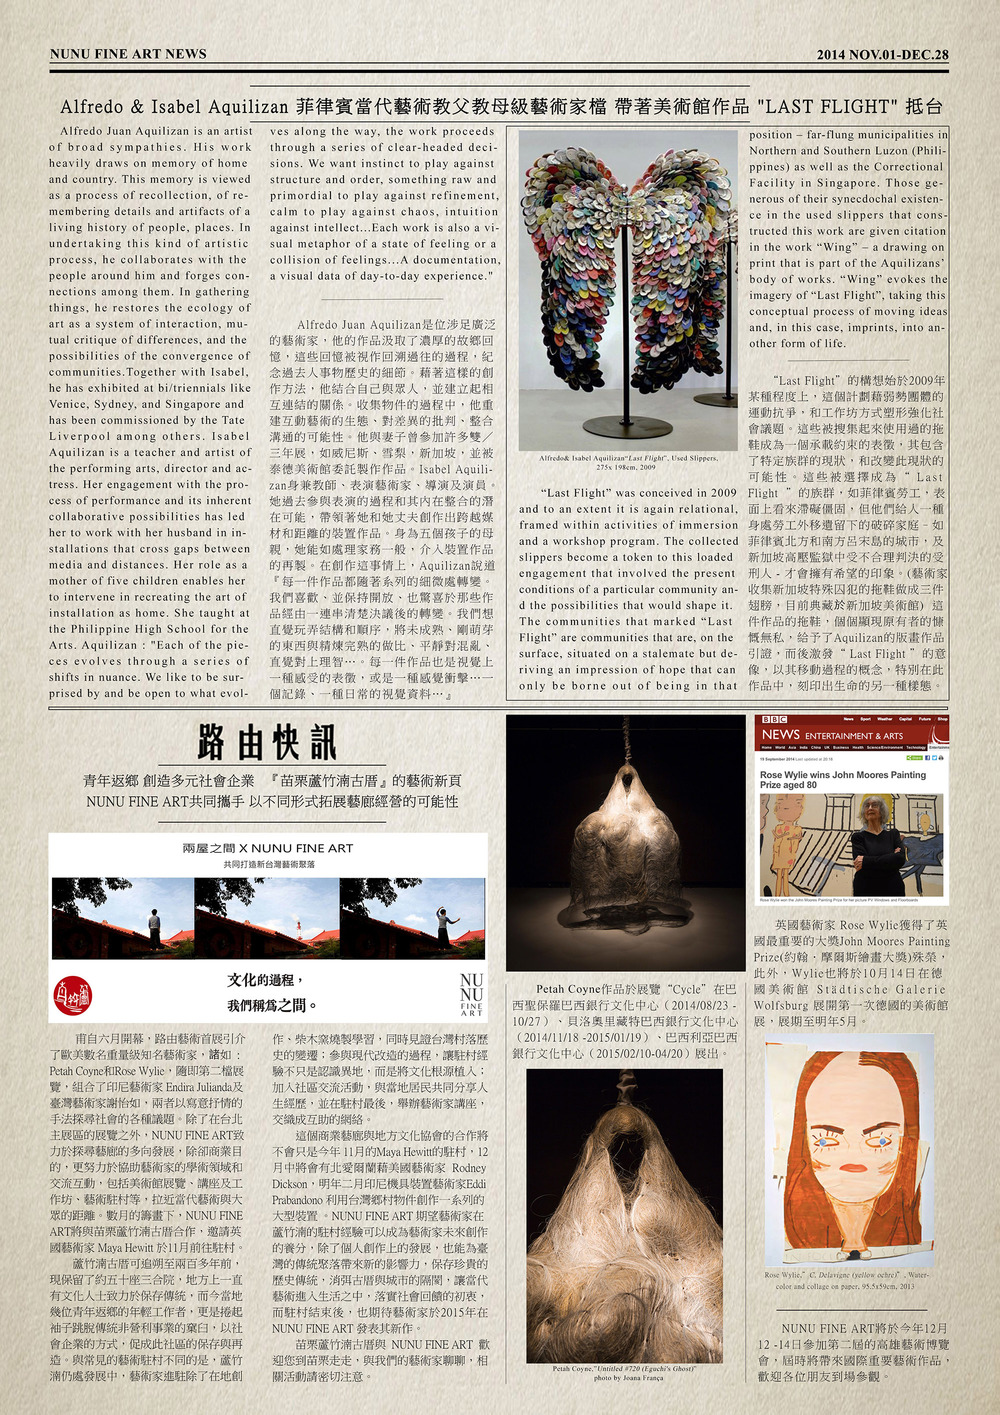 Nunu Fine Art newspaper P3 20141101-1228.jpg